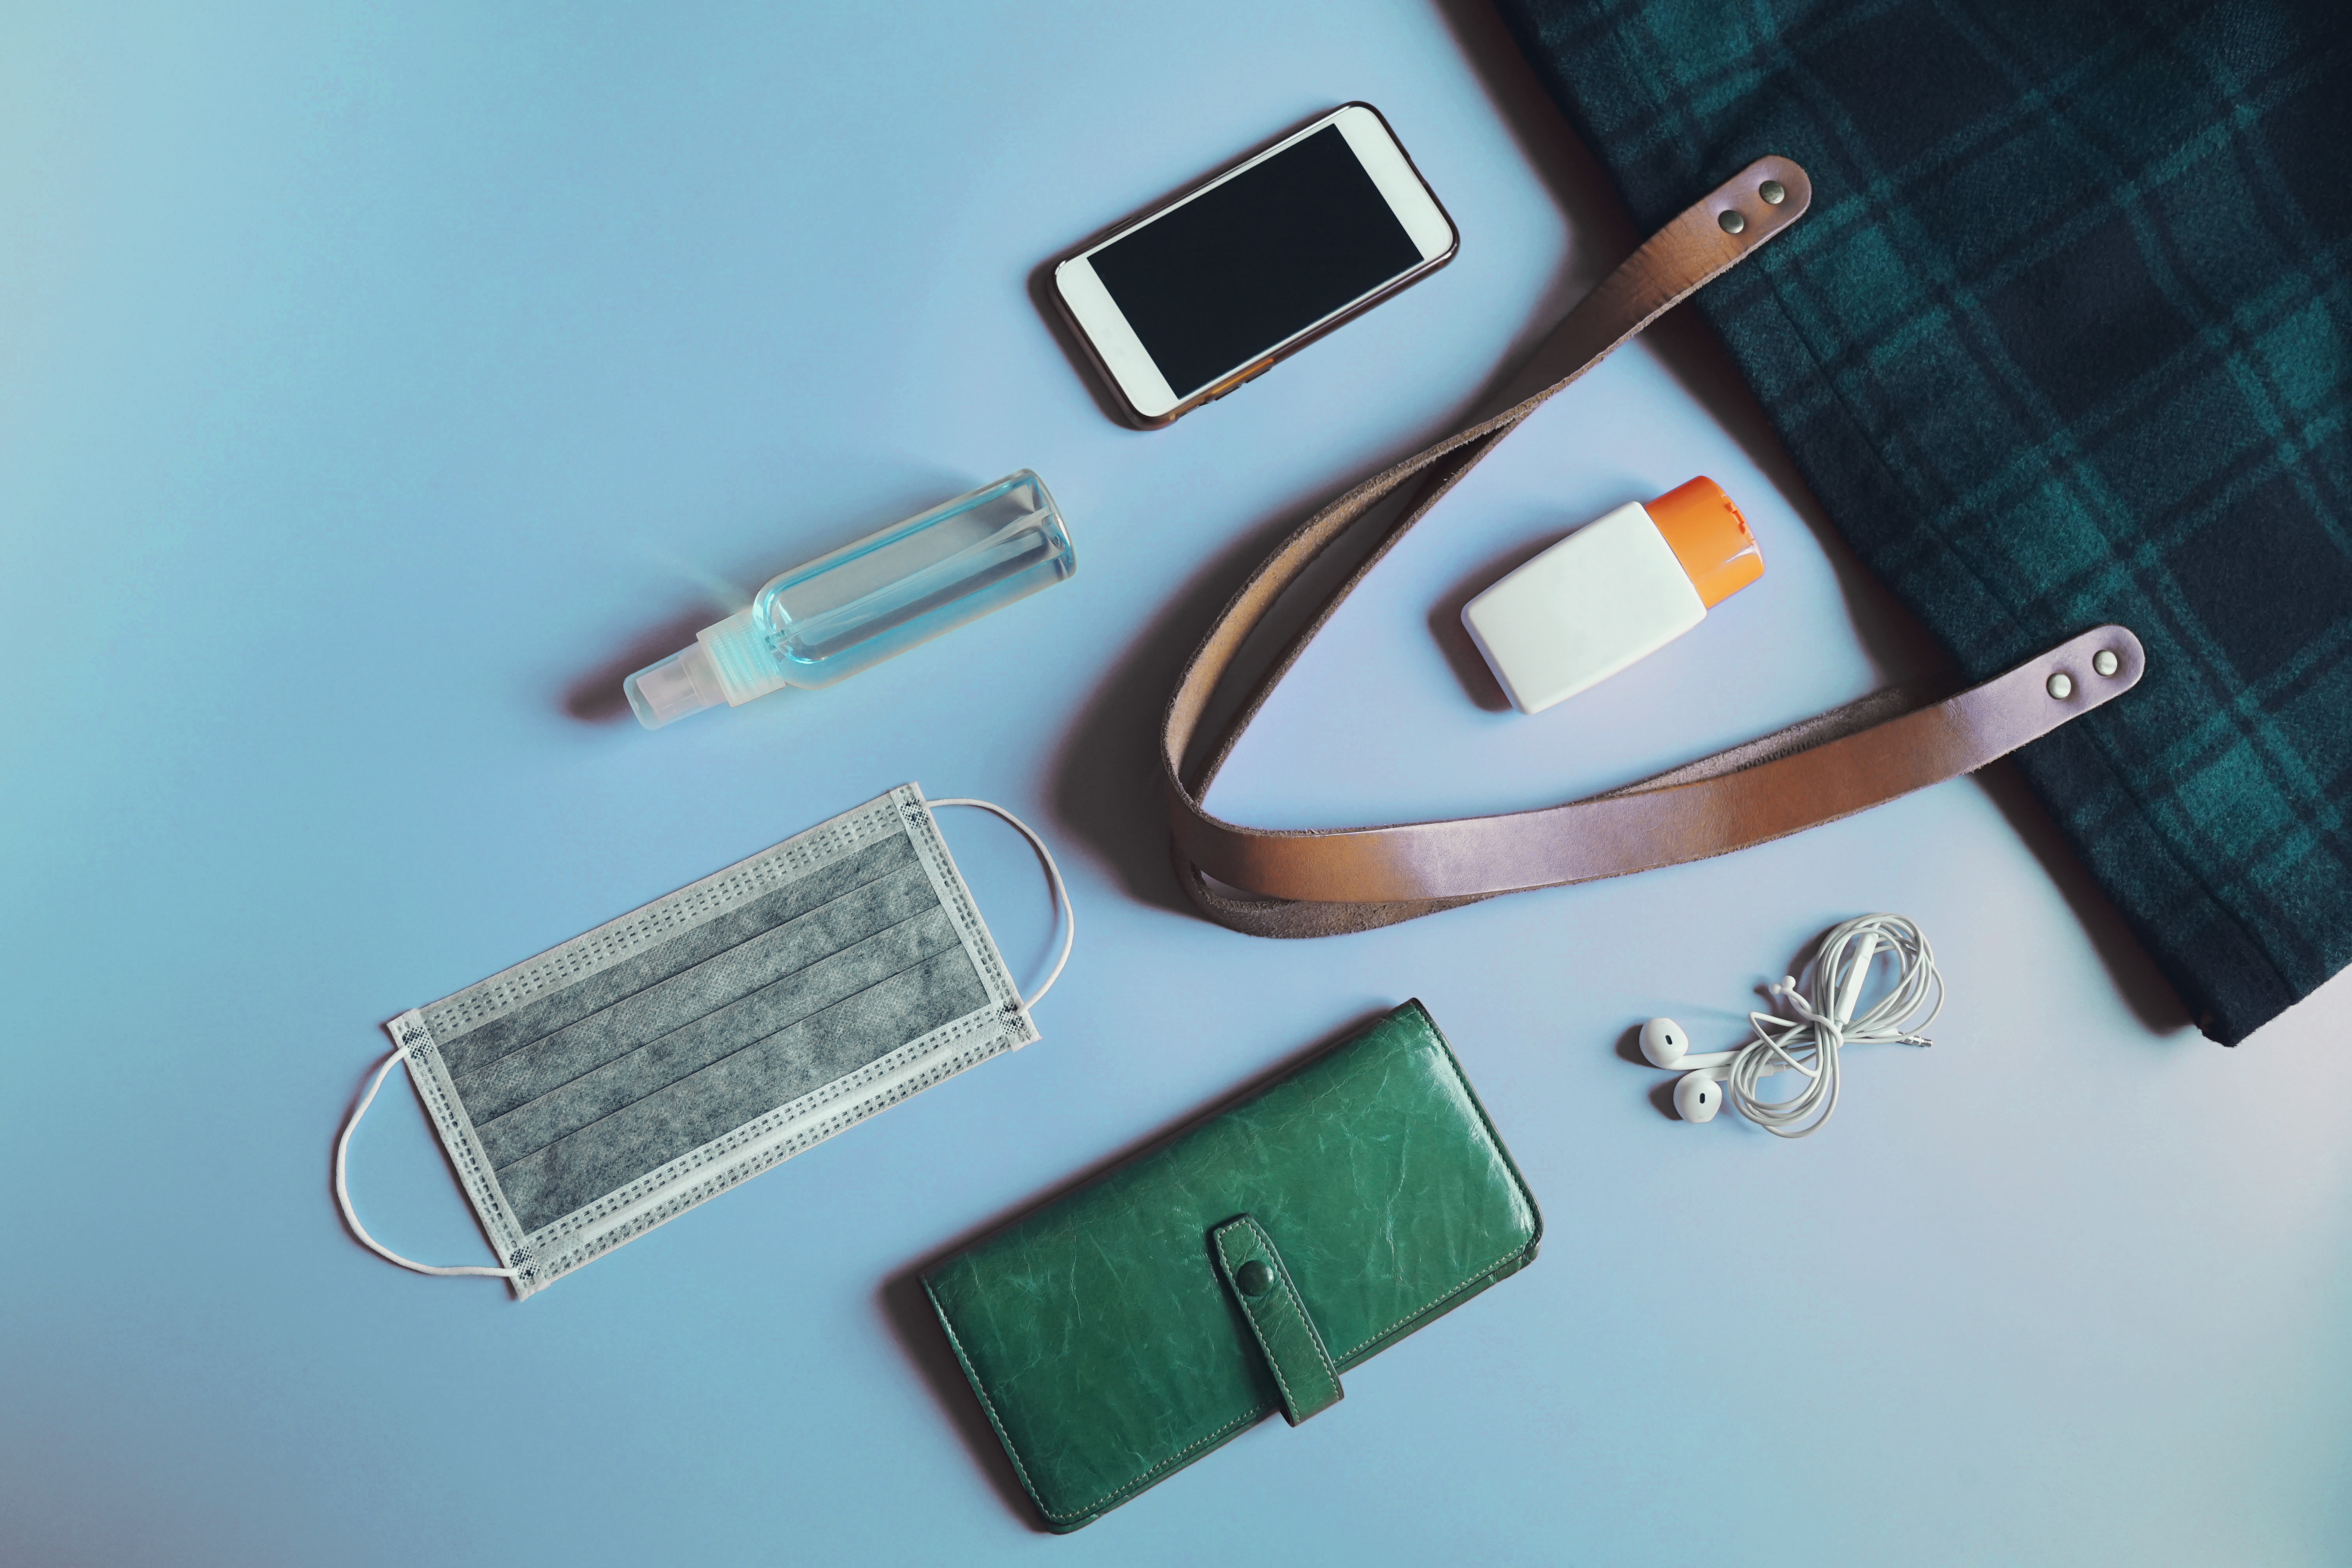 Handbag and contents including face mask, wallet, smart phone, hand sanitizer, and ear buds.